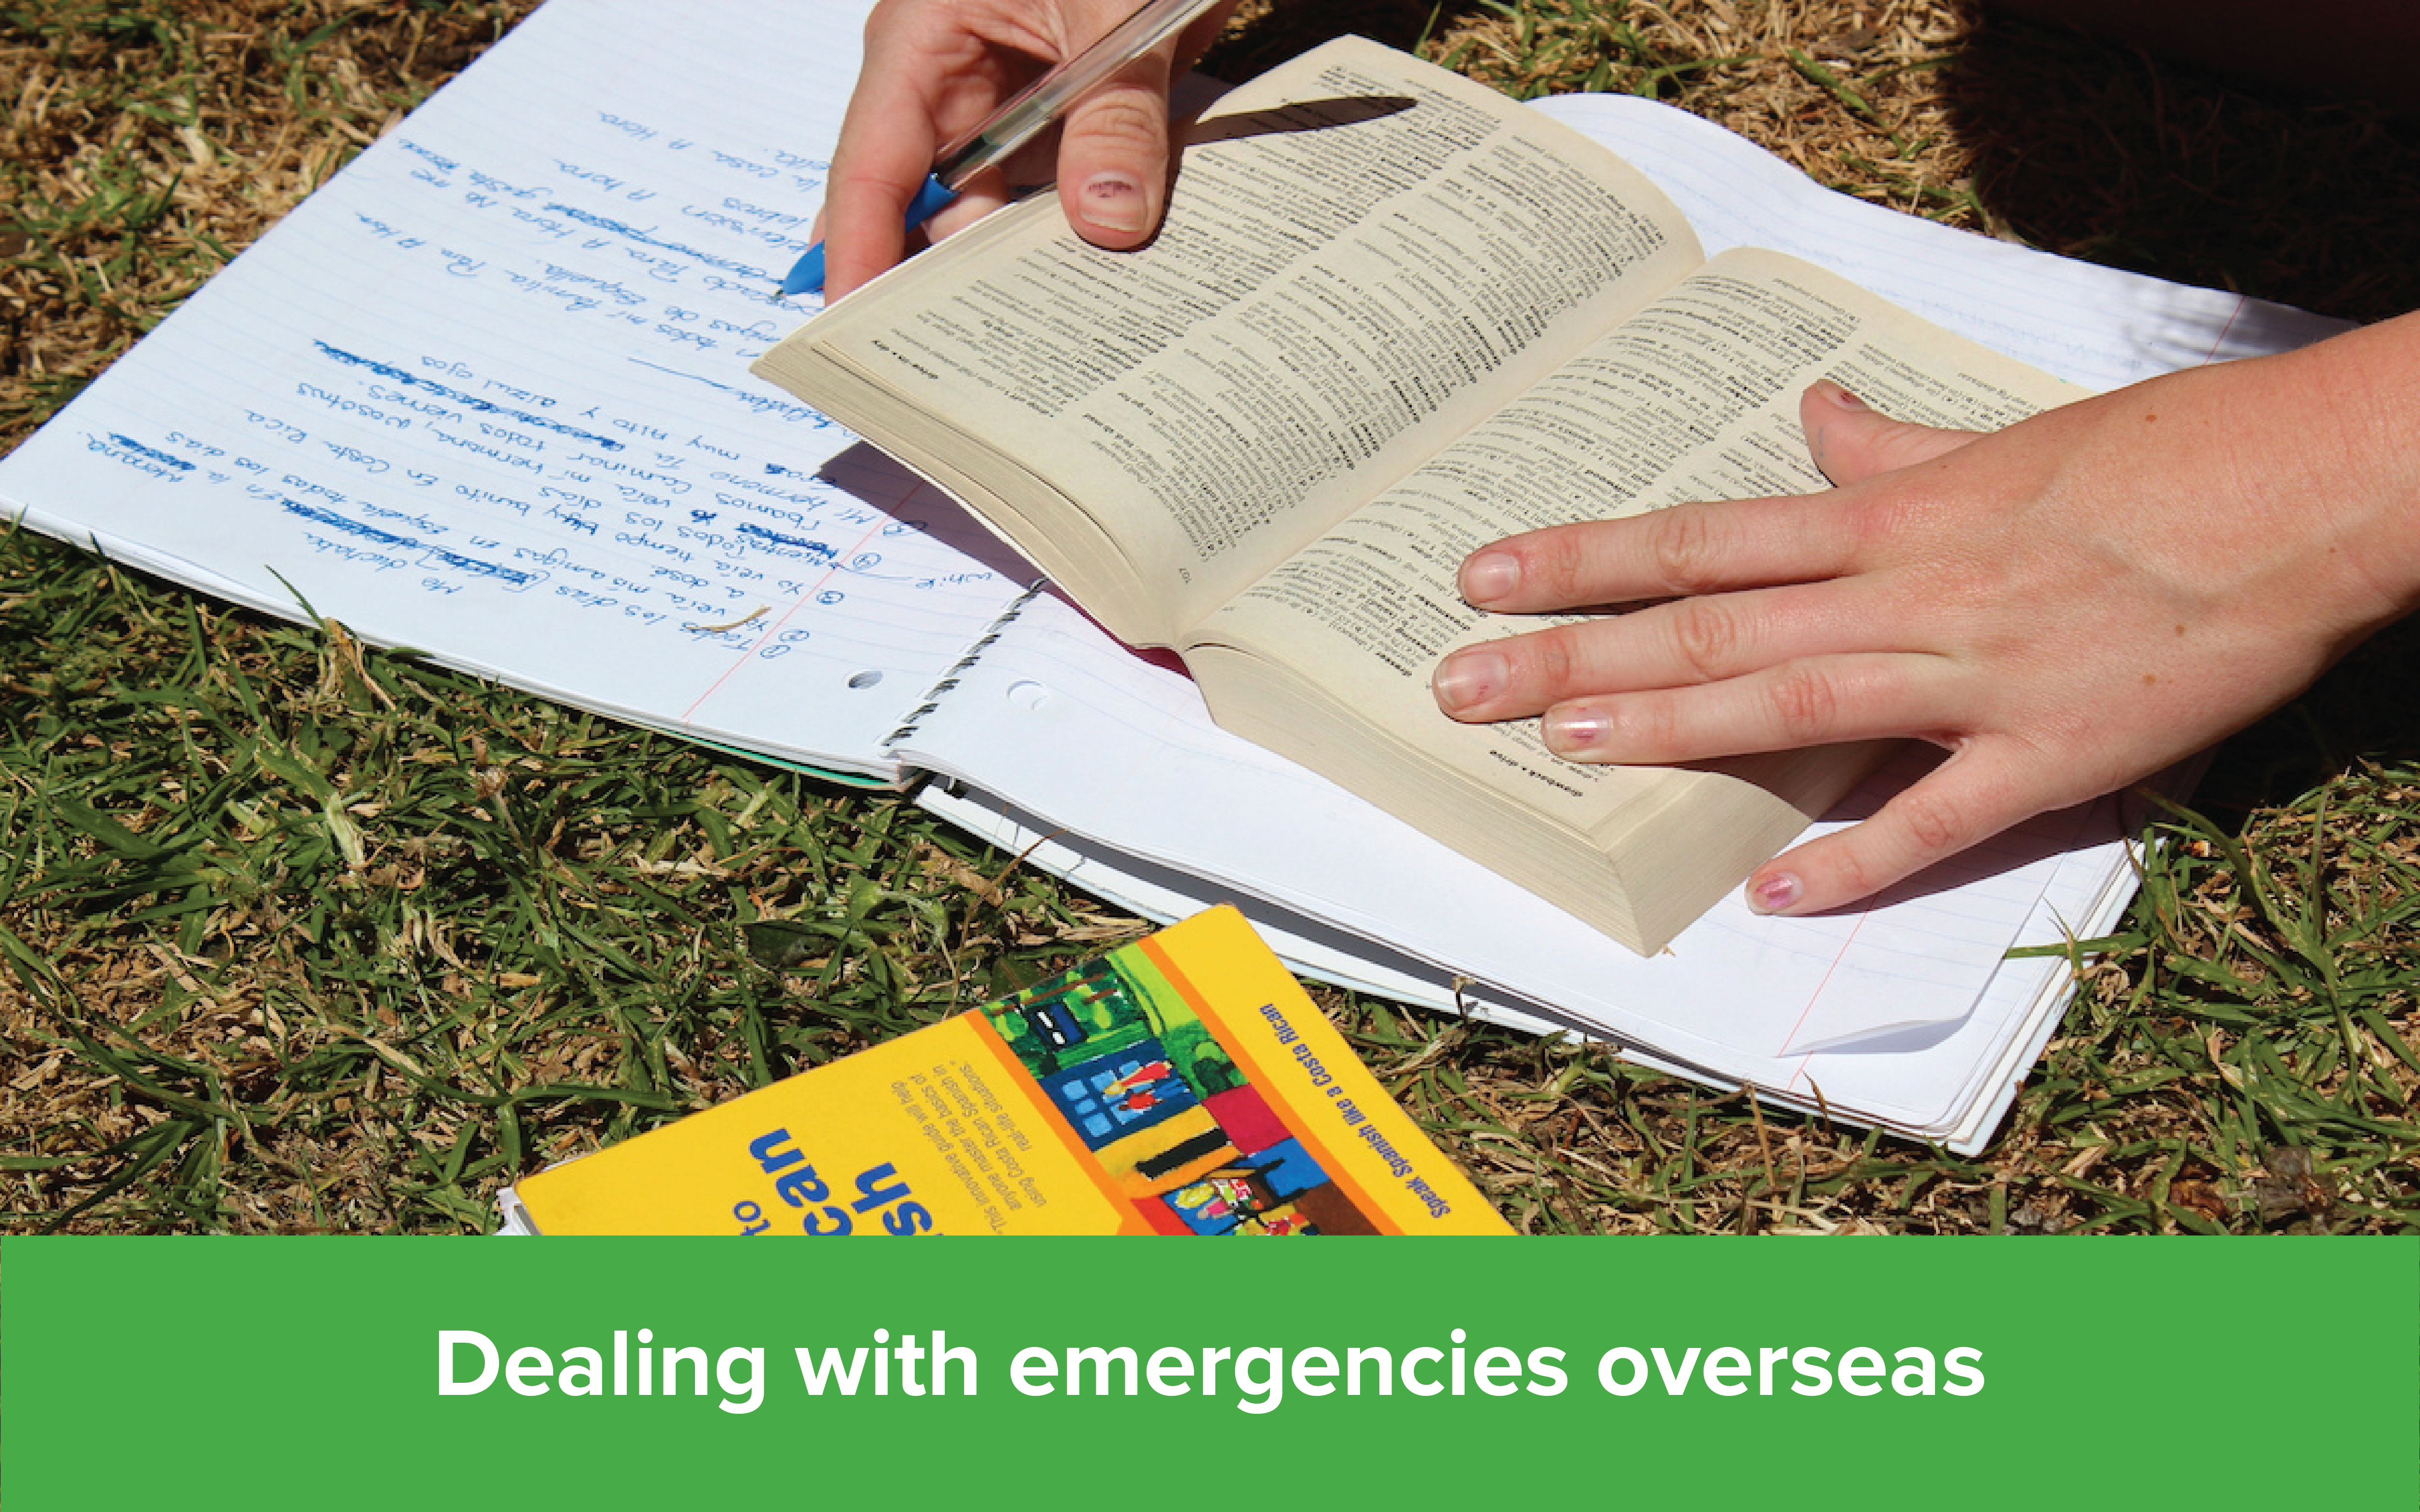 dealing_with_emergencies_overseas-01